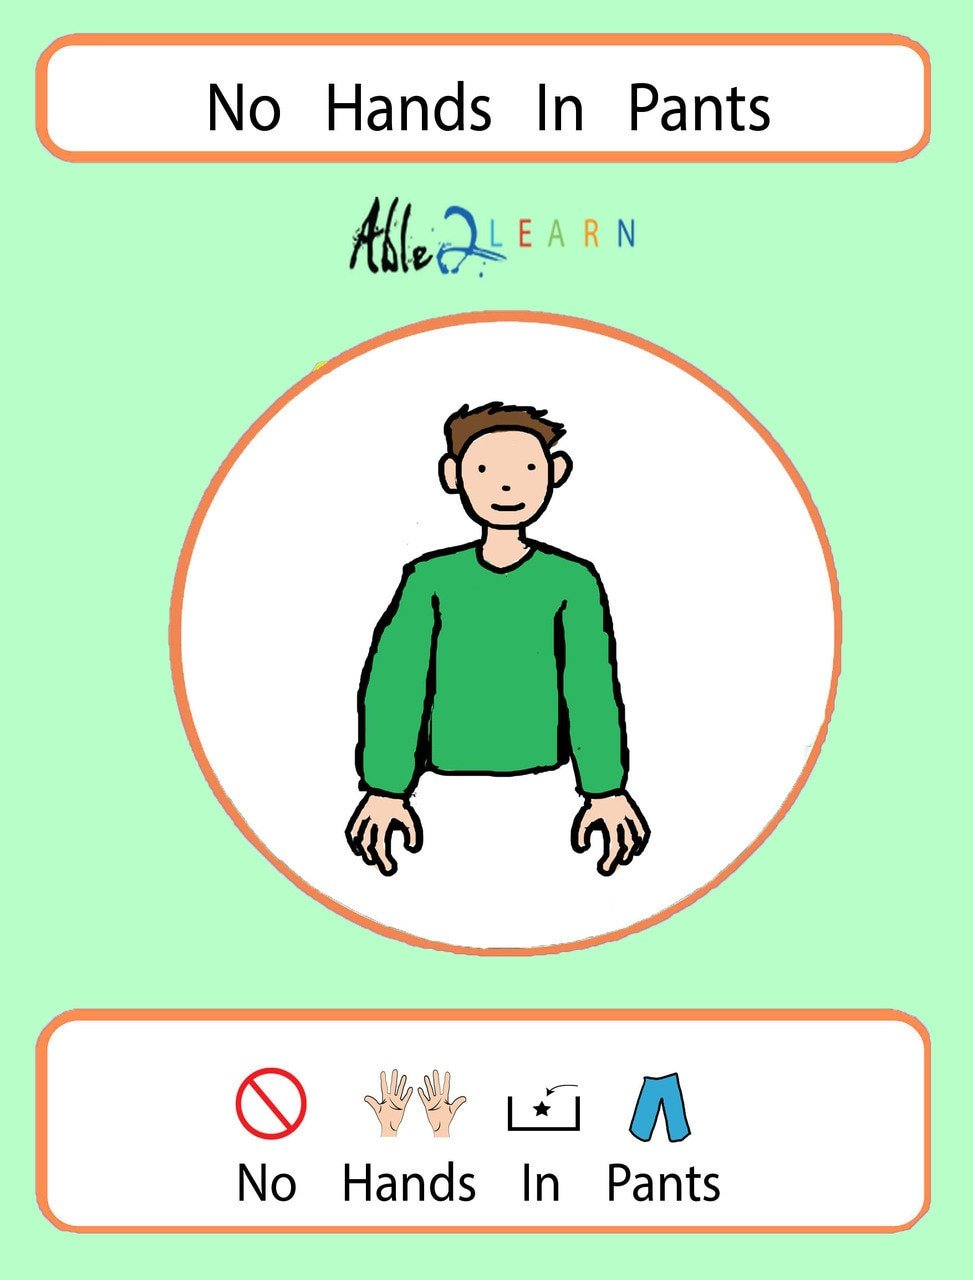 autismwisdom able2learn no hands in pants autism puberty autism health education autism social skills autism school social story free aba resources free printable worksheets 1